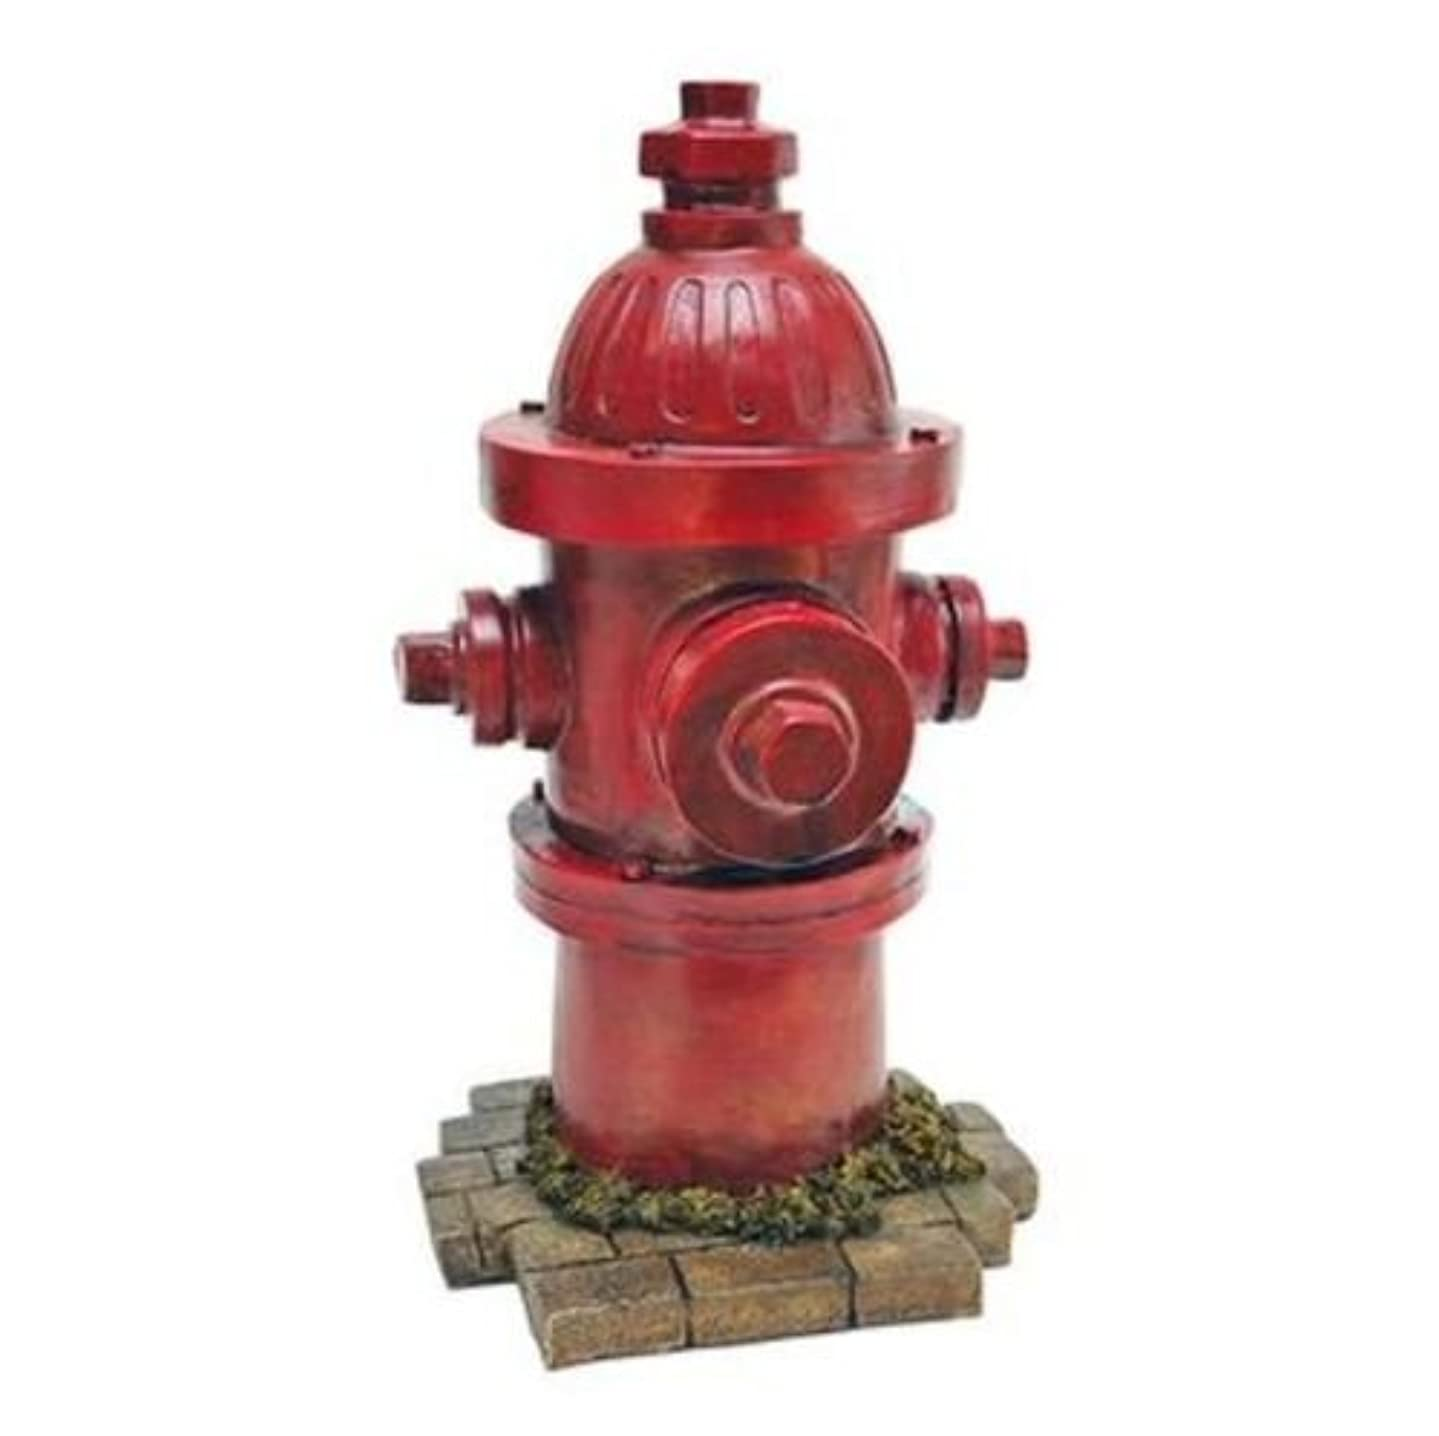 Mayrich Dog Fire Hydrant Yard Garden Indoor Outdoor Resin Statue 14'